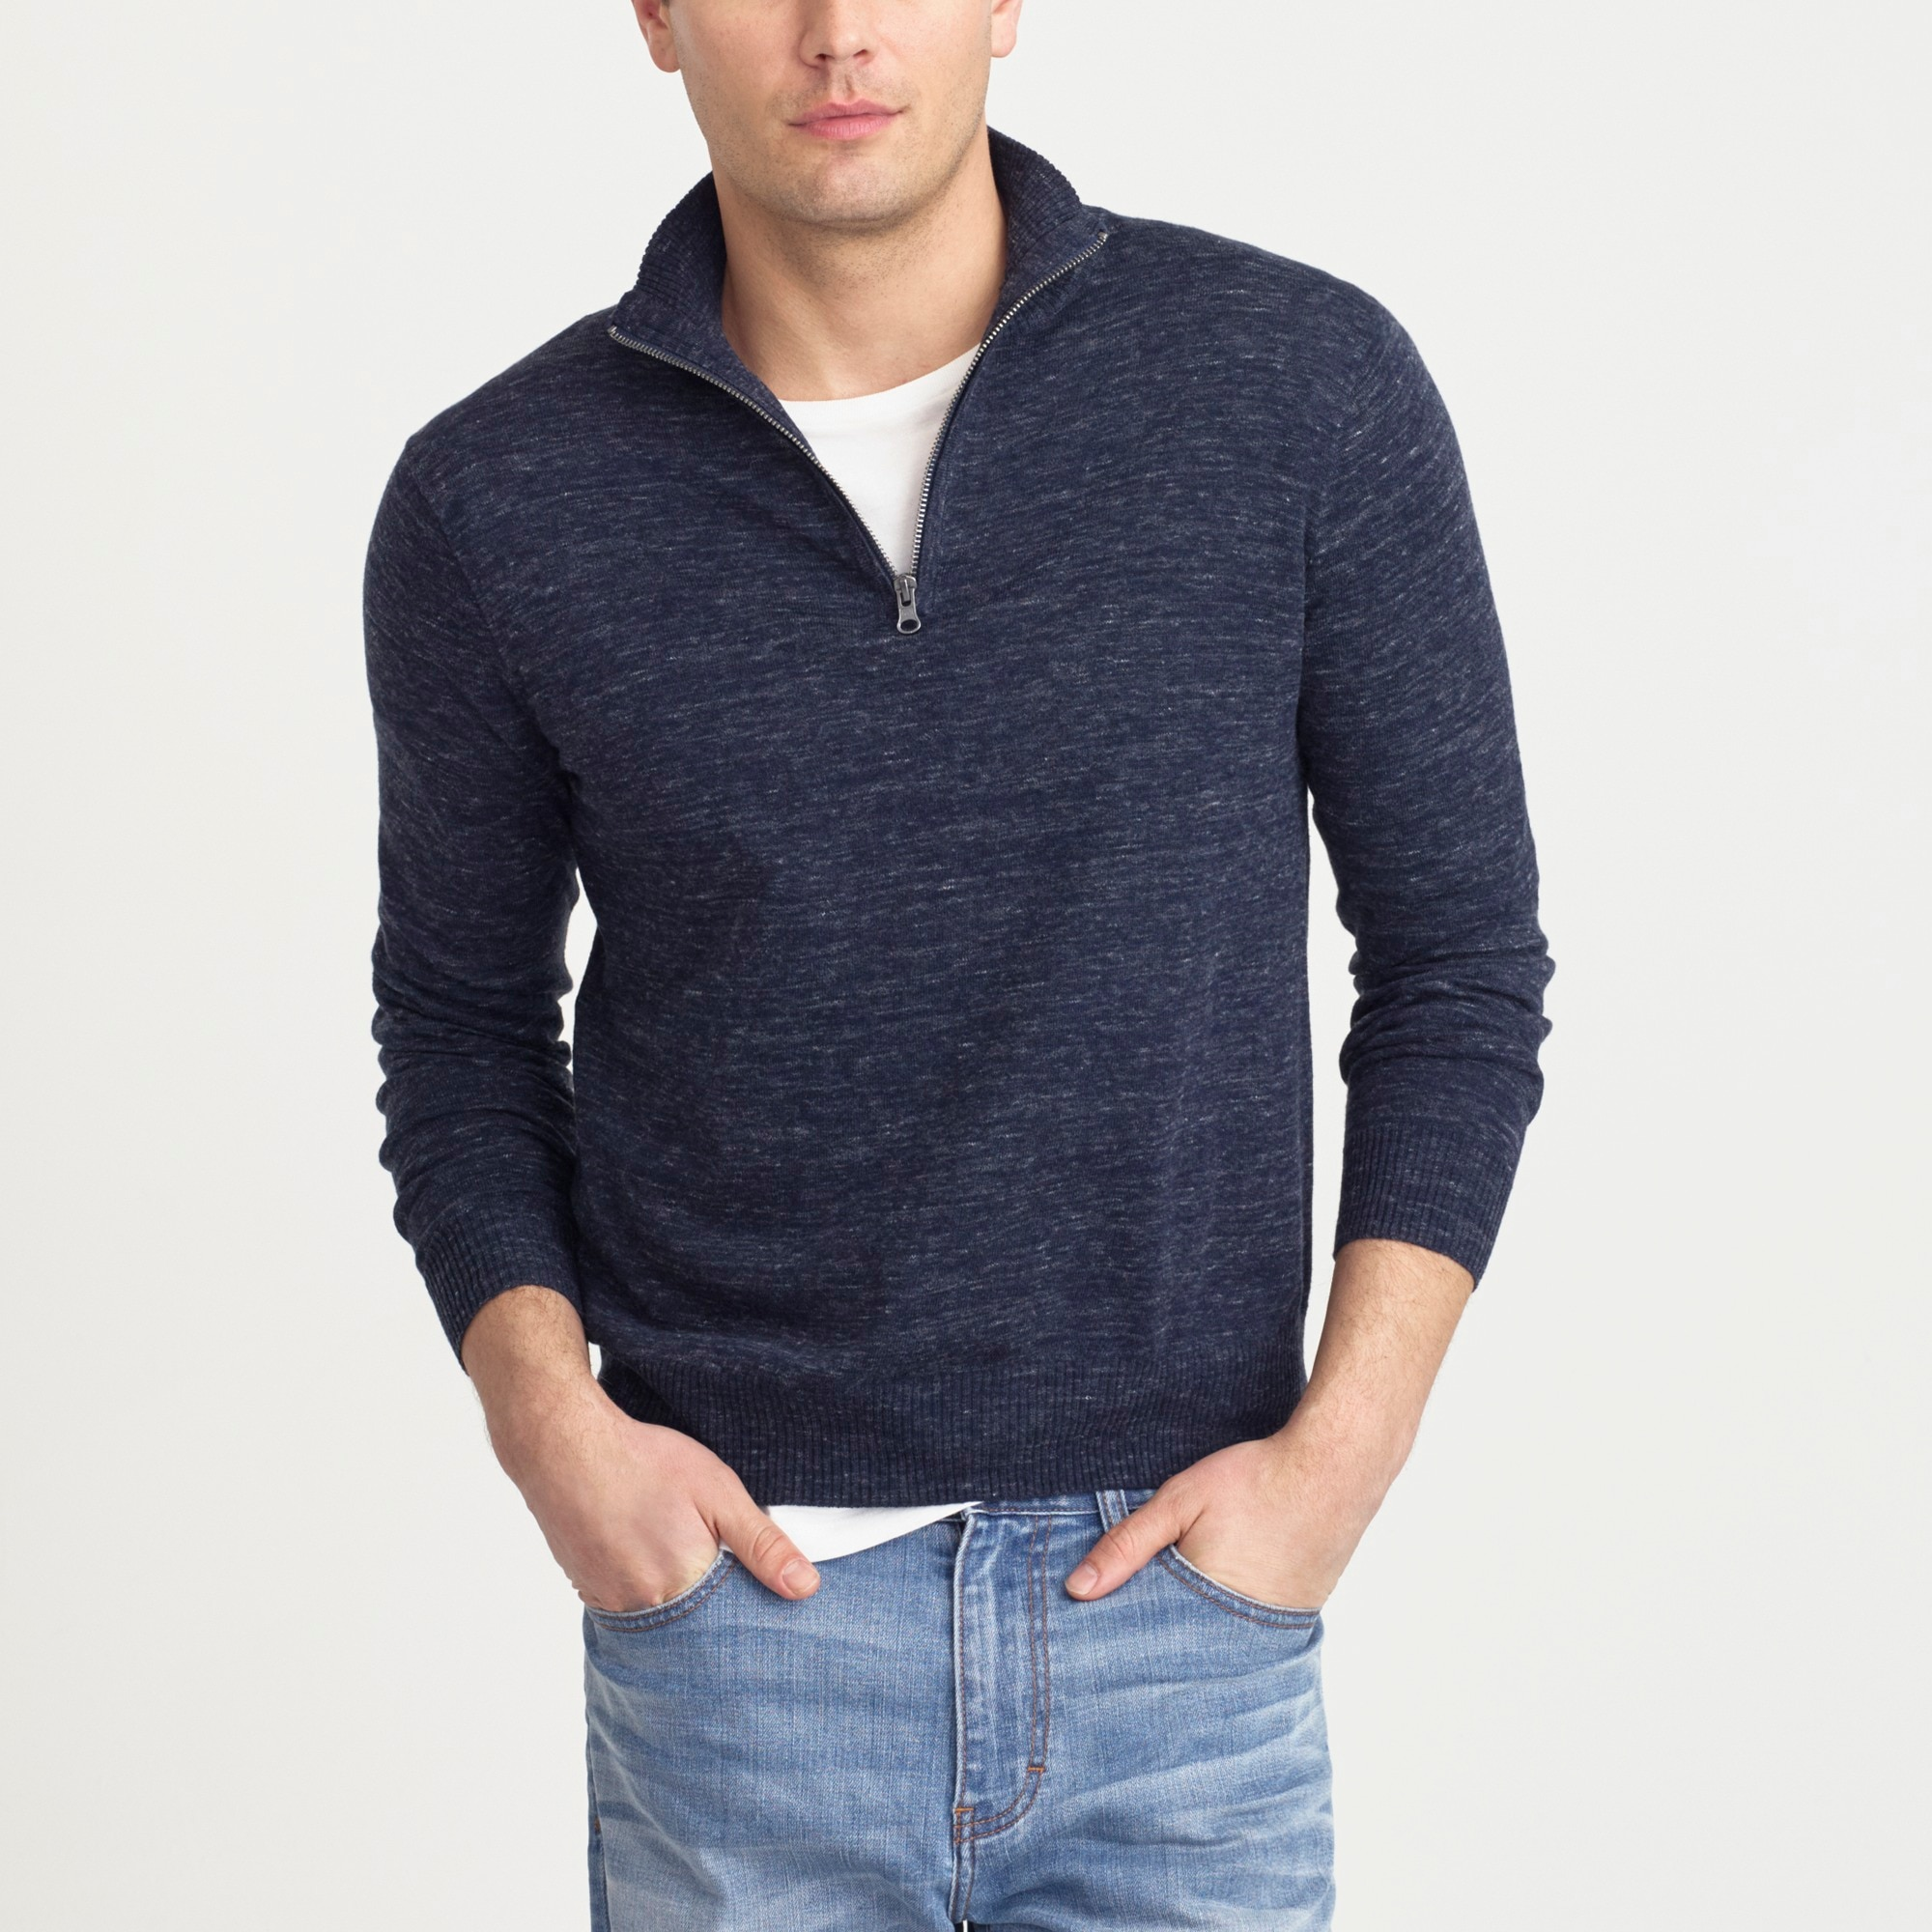 Cotton-linen half-zip sweater factorymen new arrivals c